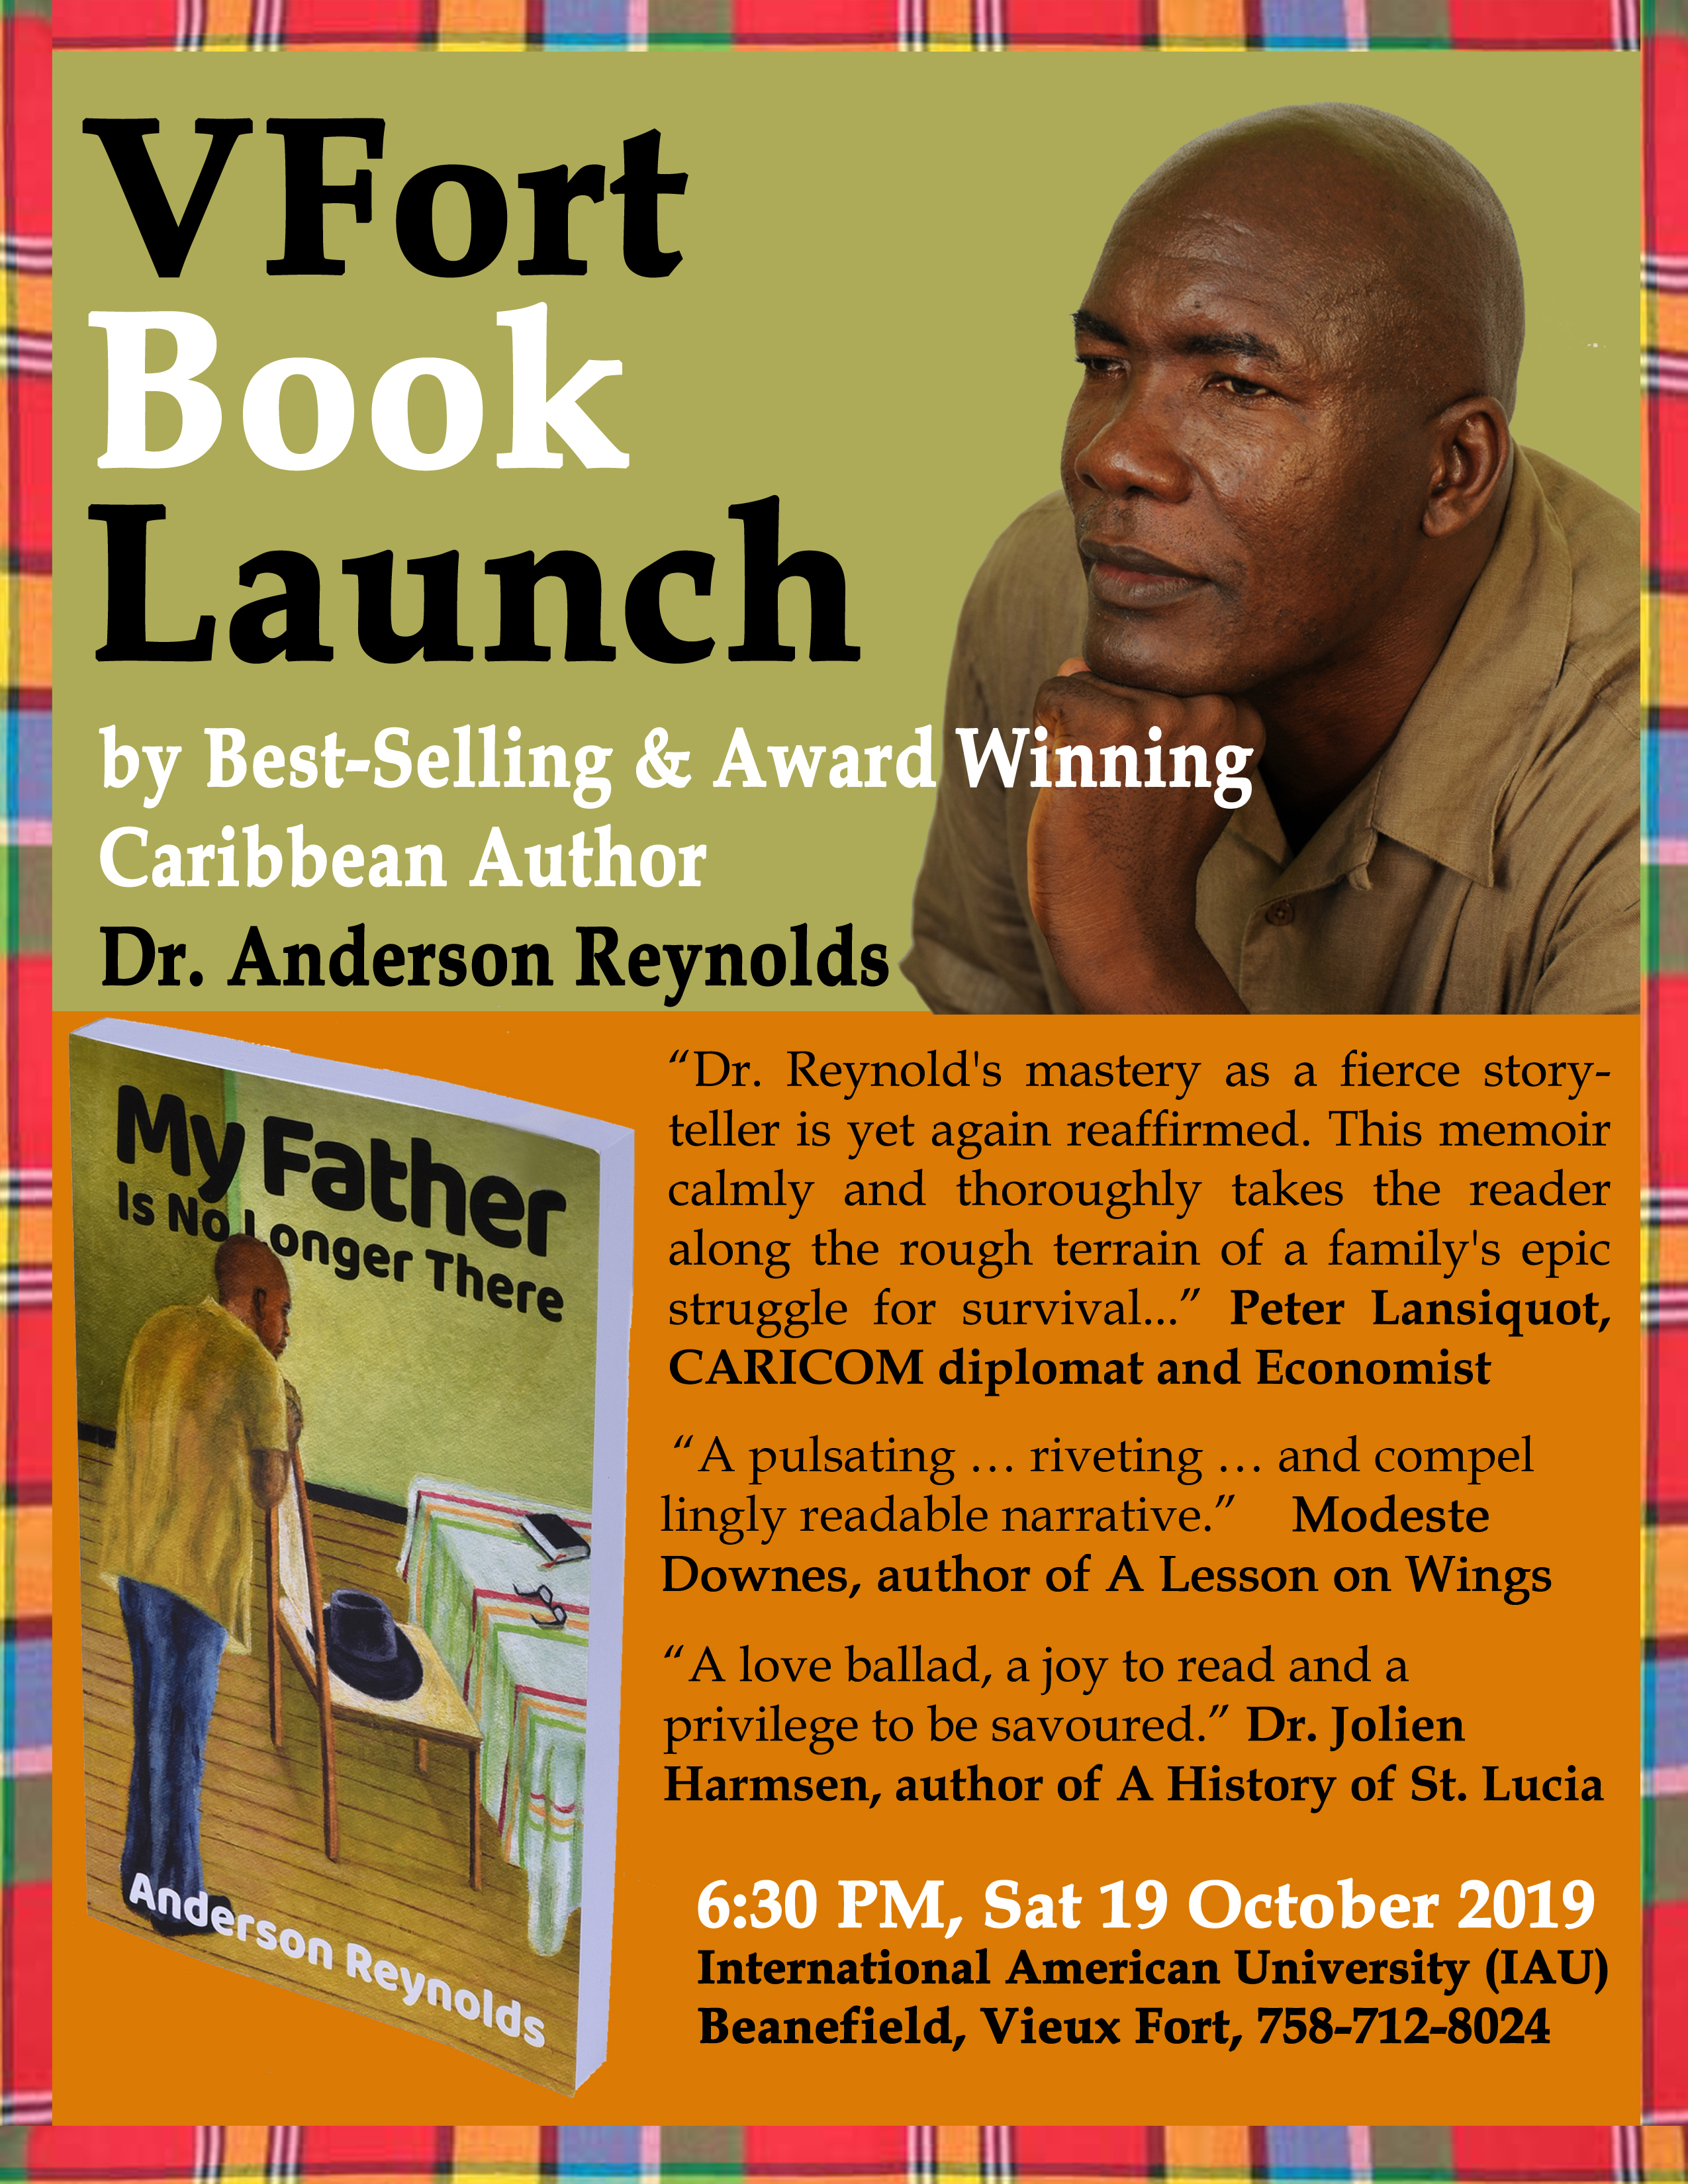 St lucian author anderson reynolds Vieux Fort Book Launch Final